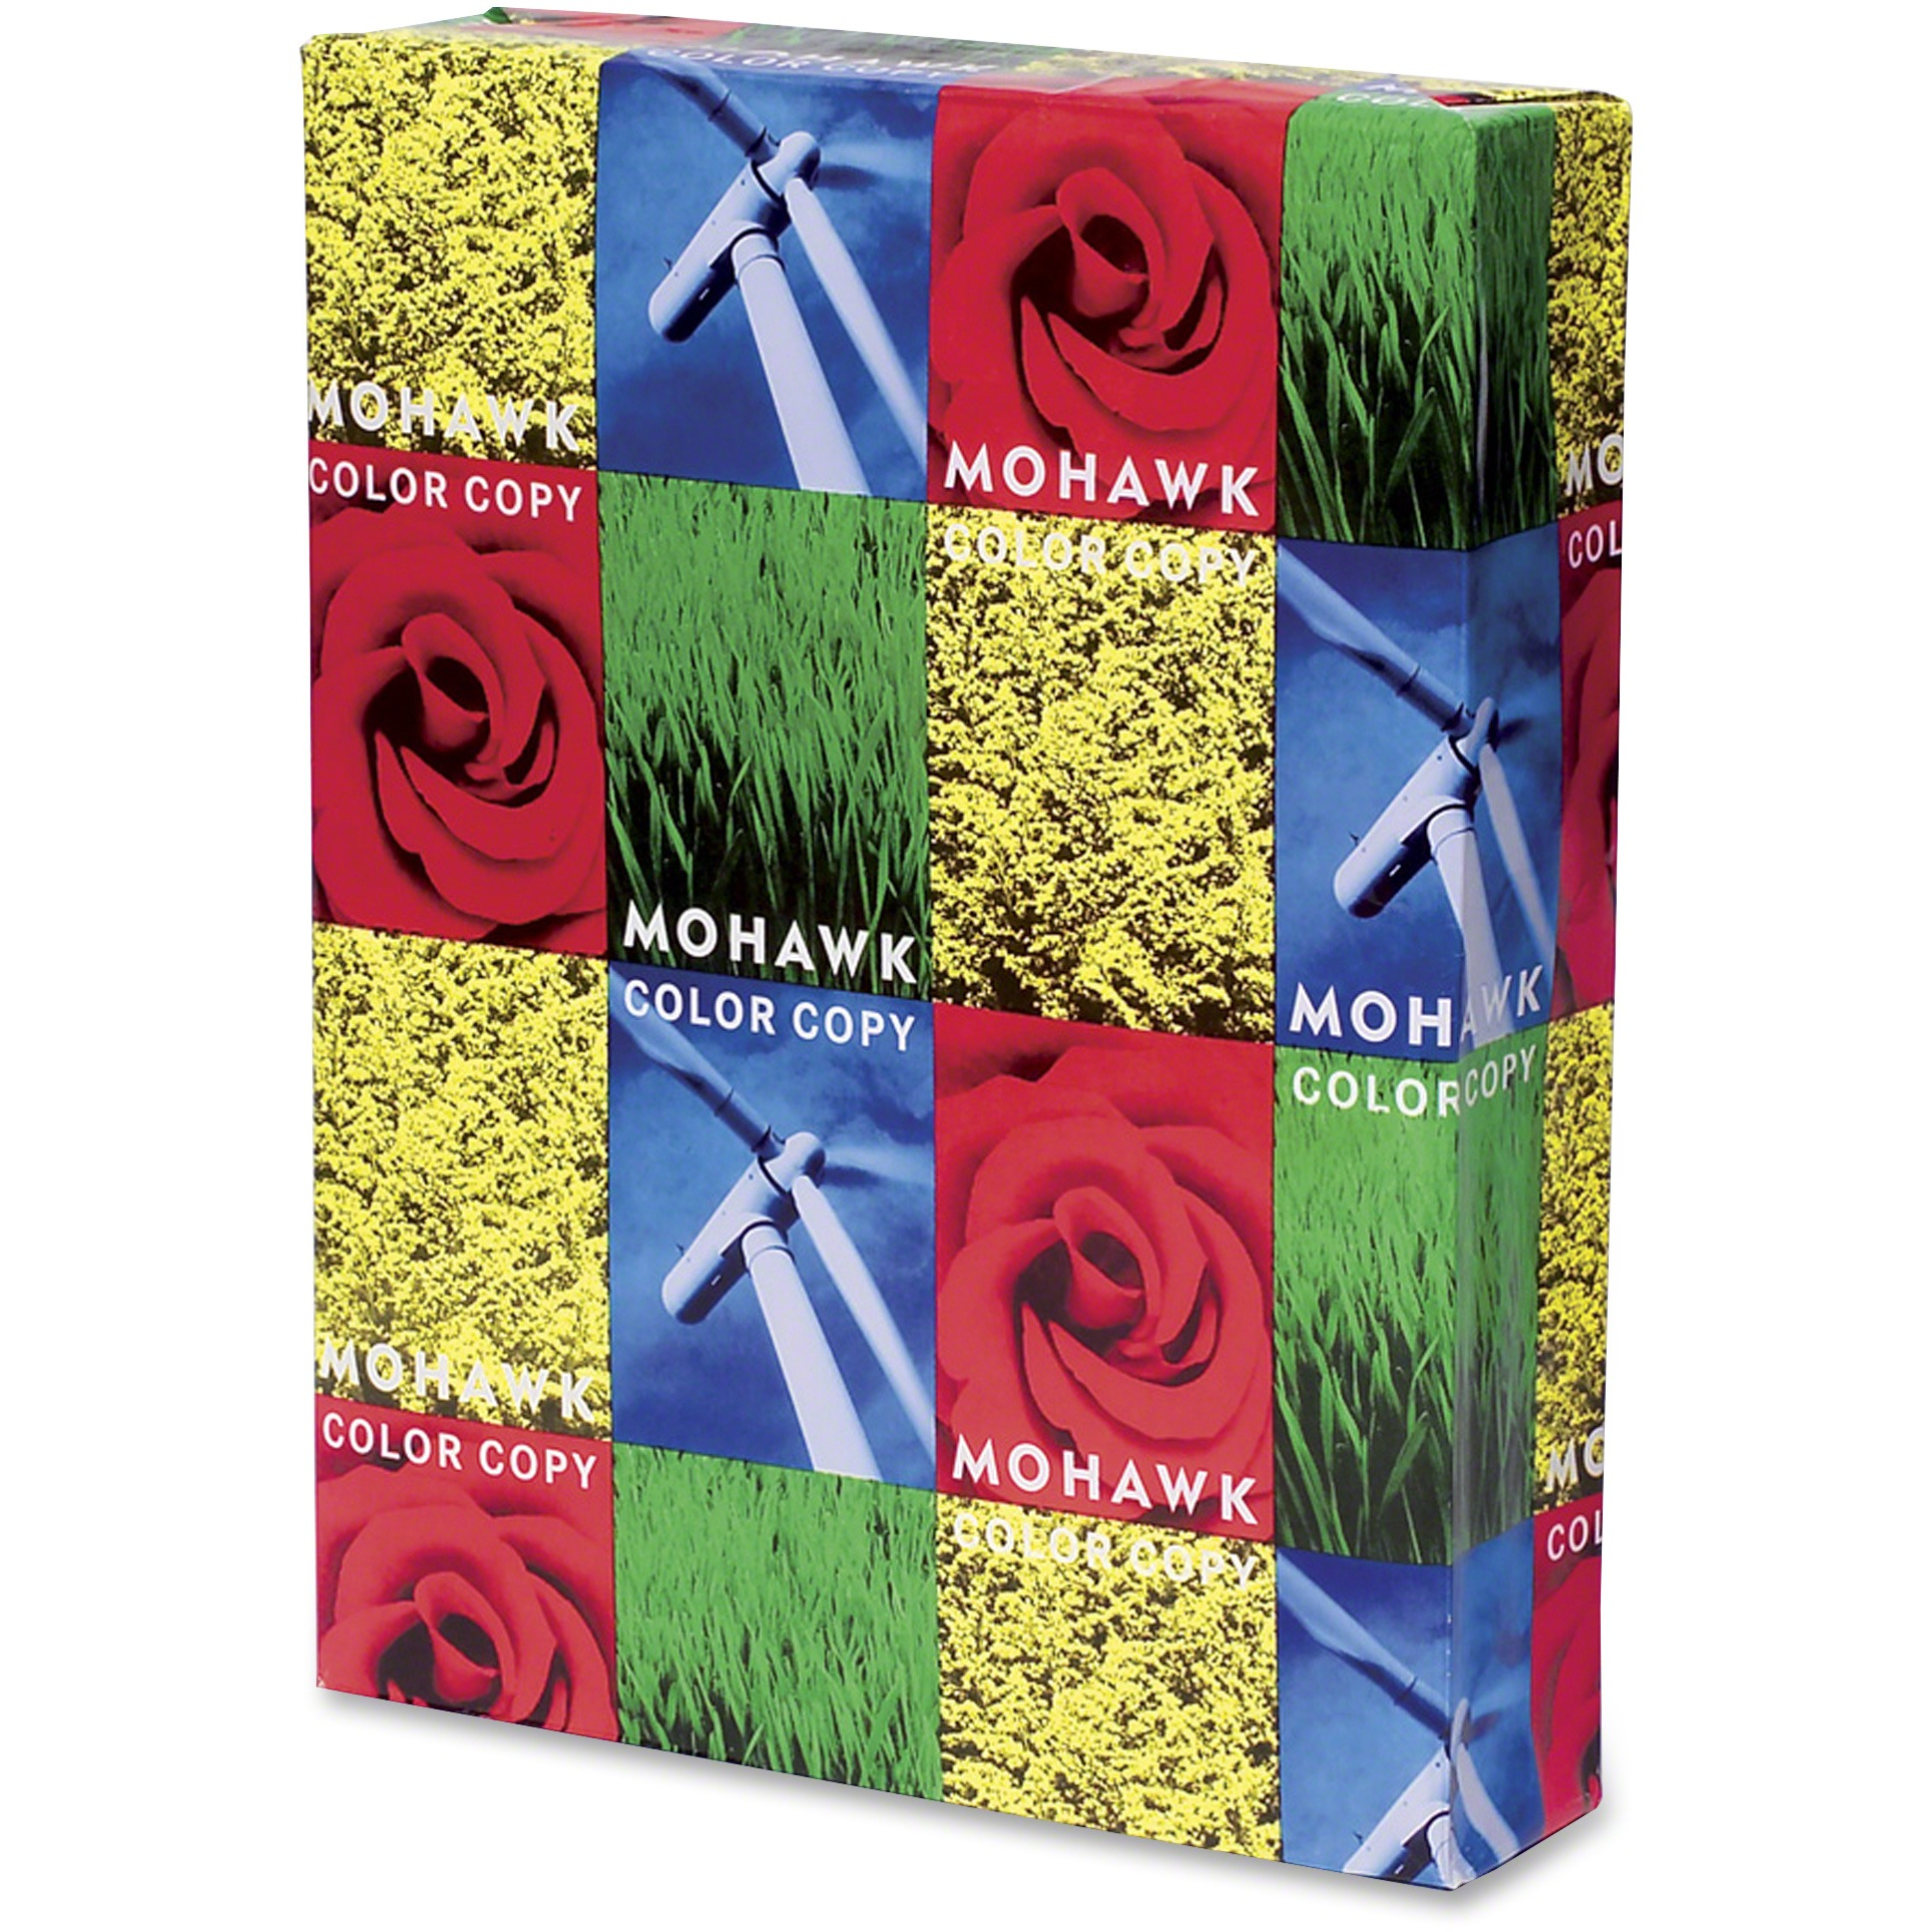 Mohawk Color Copy Copy & Multipurpose Paper, Bright White, 500 / Ream (Quantity)